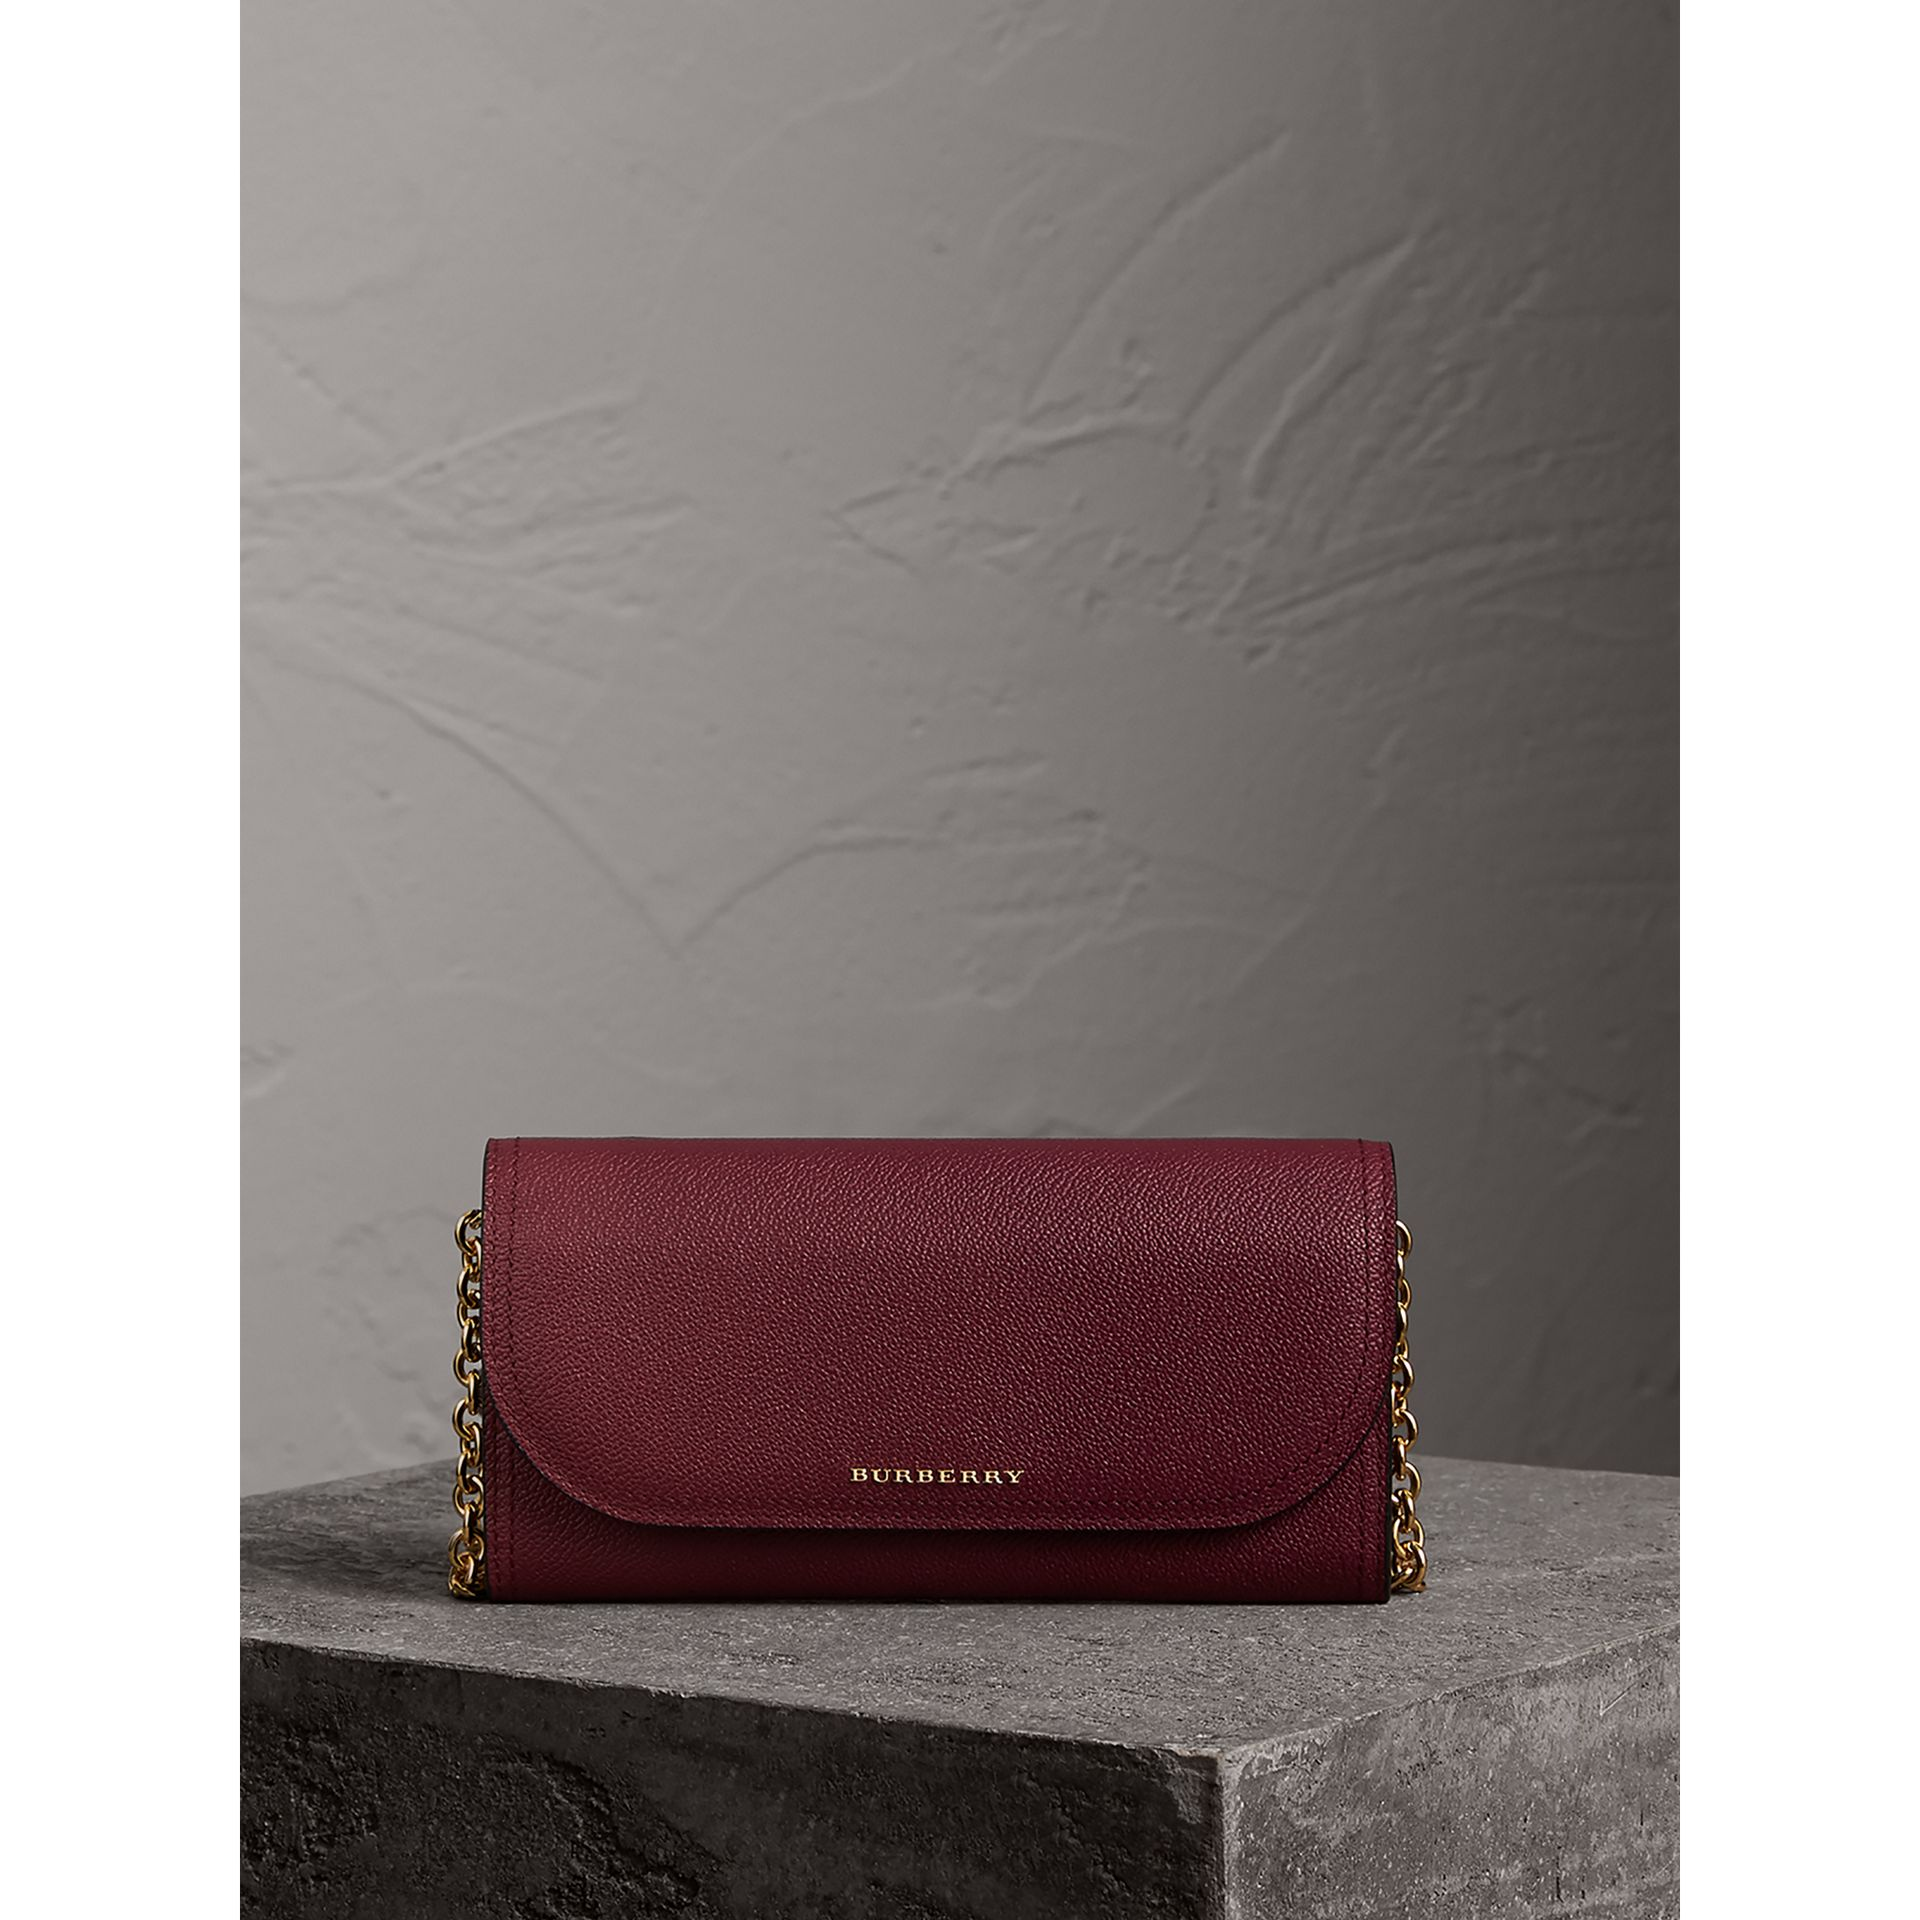 Leather Wallet with Chain in Dark Plum - Women | Burberry Hong Kong - gallery image 5